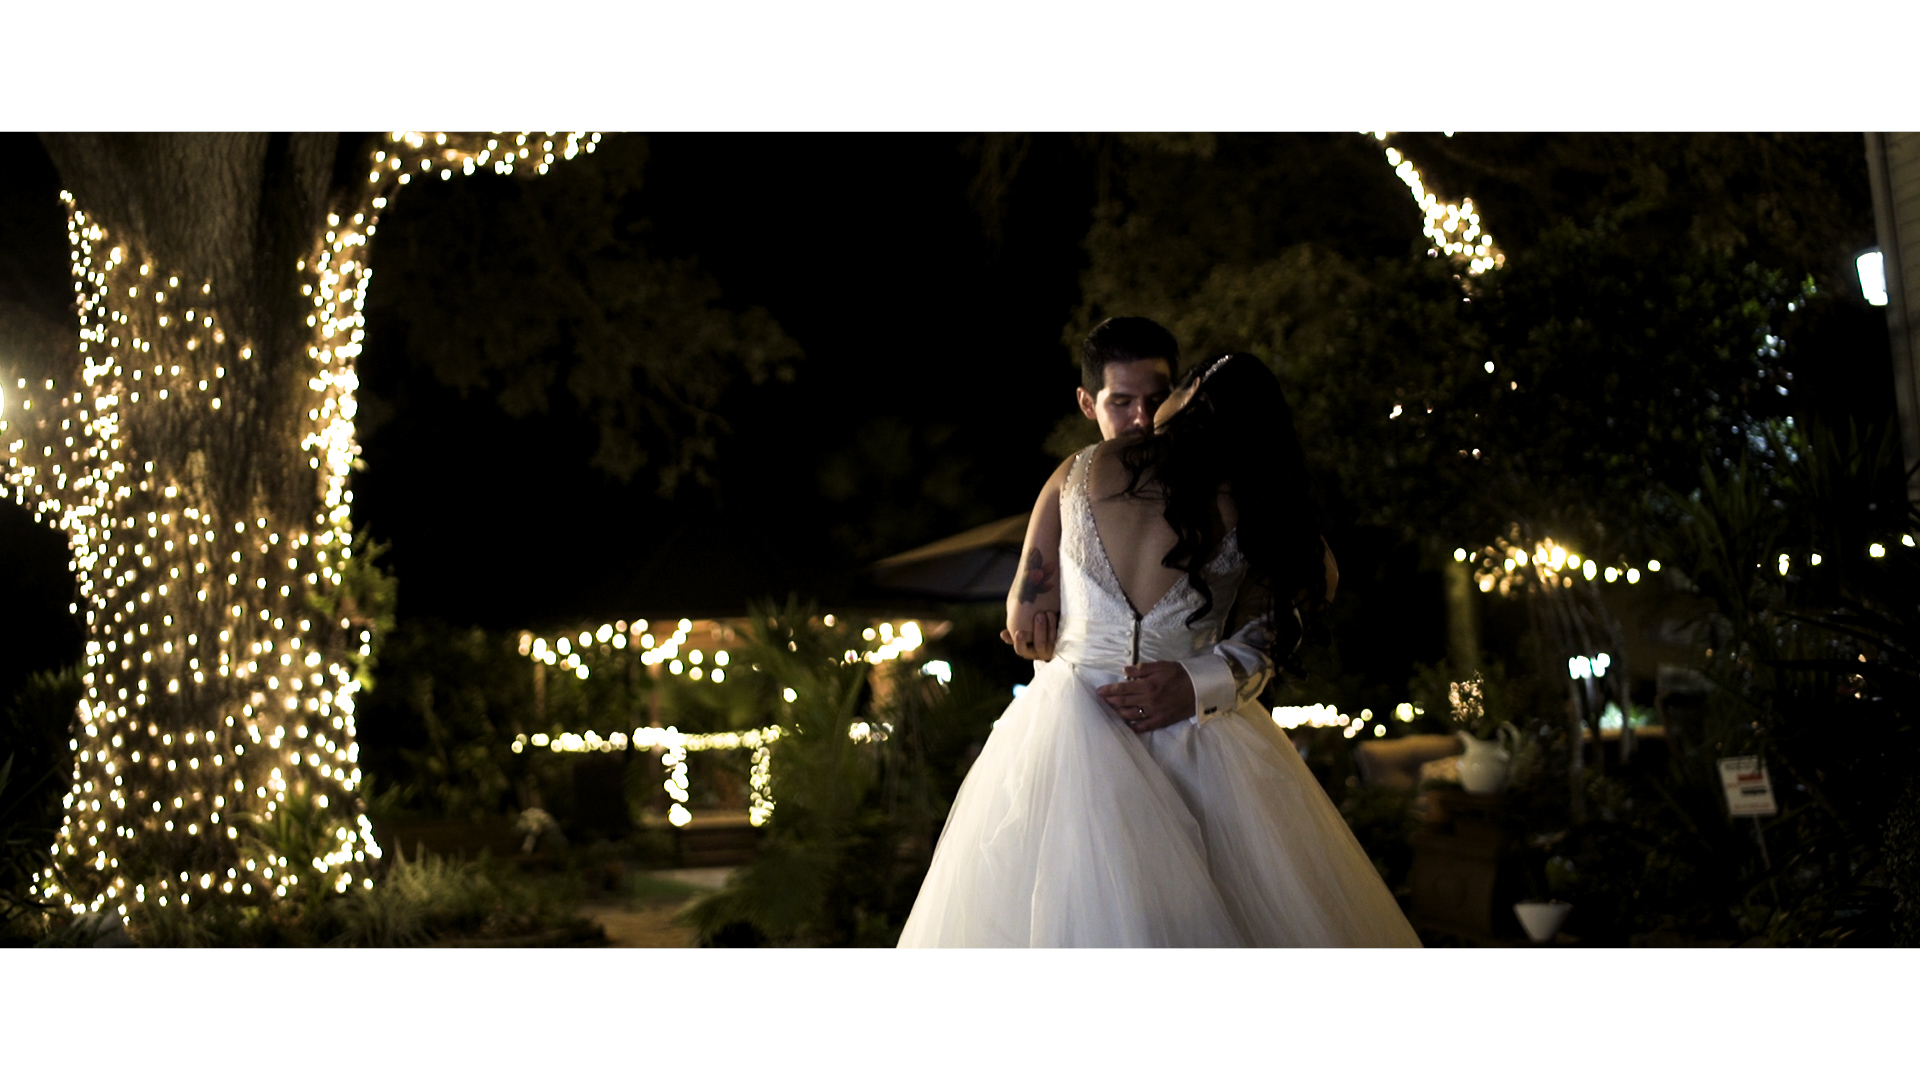 Stephanie Gomez - EP Films did such an amazing job on our wedding photos and video! At first we were hesitant on getting videography but I am so glad we did! Rafael was my one hardest working vendors he was the very first one at the venue to set up, and he was constantly making sure every moment we wanted was captured perfectly! My bridal suite was up a difficult set of stairs and Rafael was running up and down them to capture moments between my husband and I. The final product came pretty quickly and so nicely in a personalized box. I definitely recommend EP Films we were blown away by our photos and video!